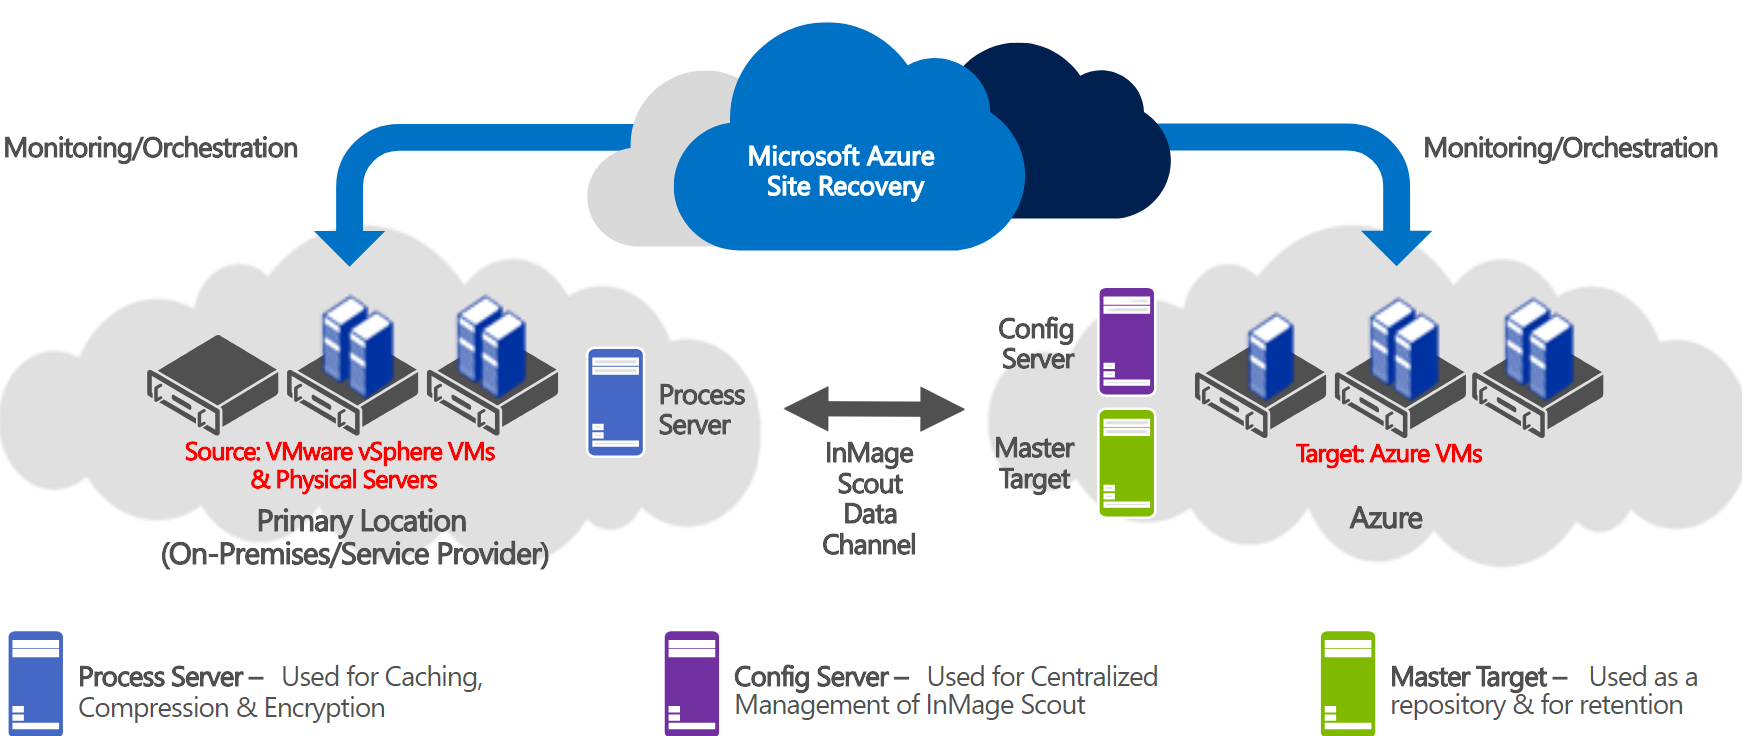 What Is Microsoft Azure Site Recovery